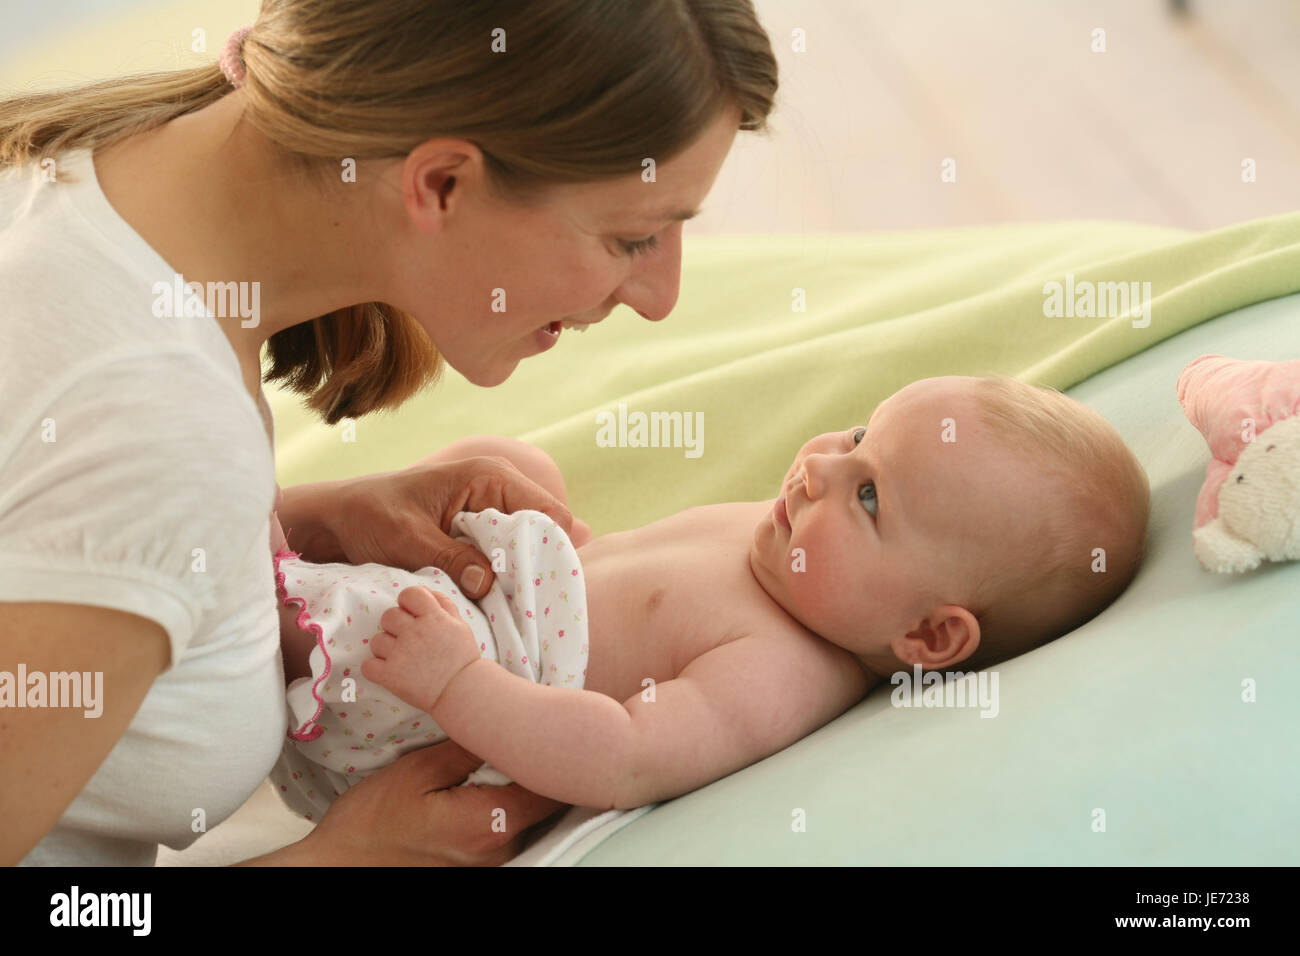 Nut, baby, 4 months, eye contact, smile, lie Indoor, girls, people, woman, nonsense animal, portrait, at the side, - Stock Image